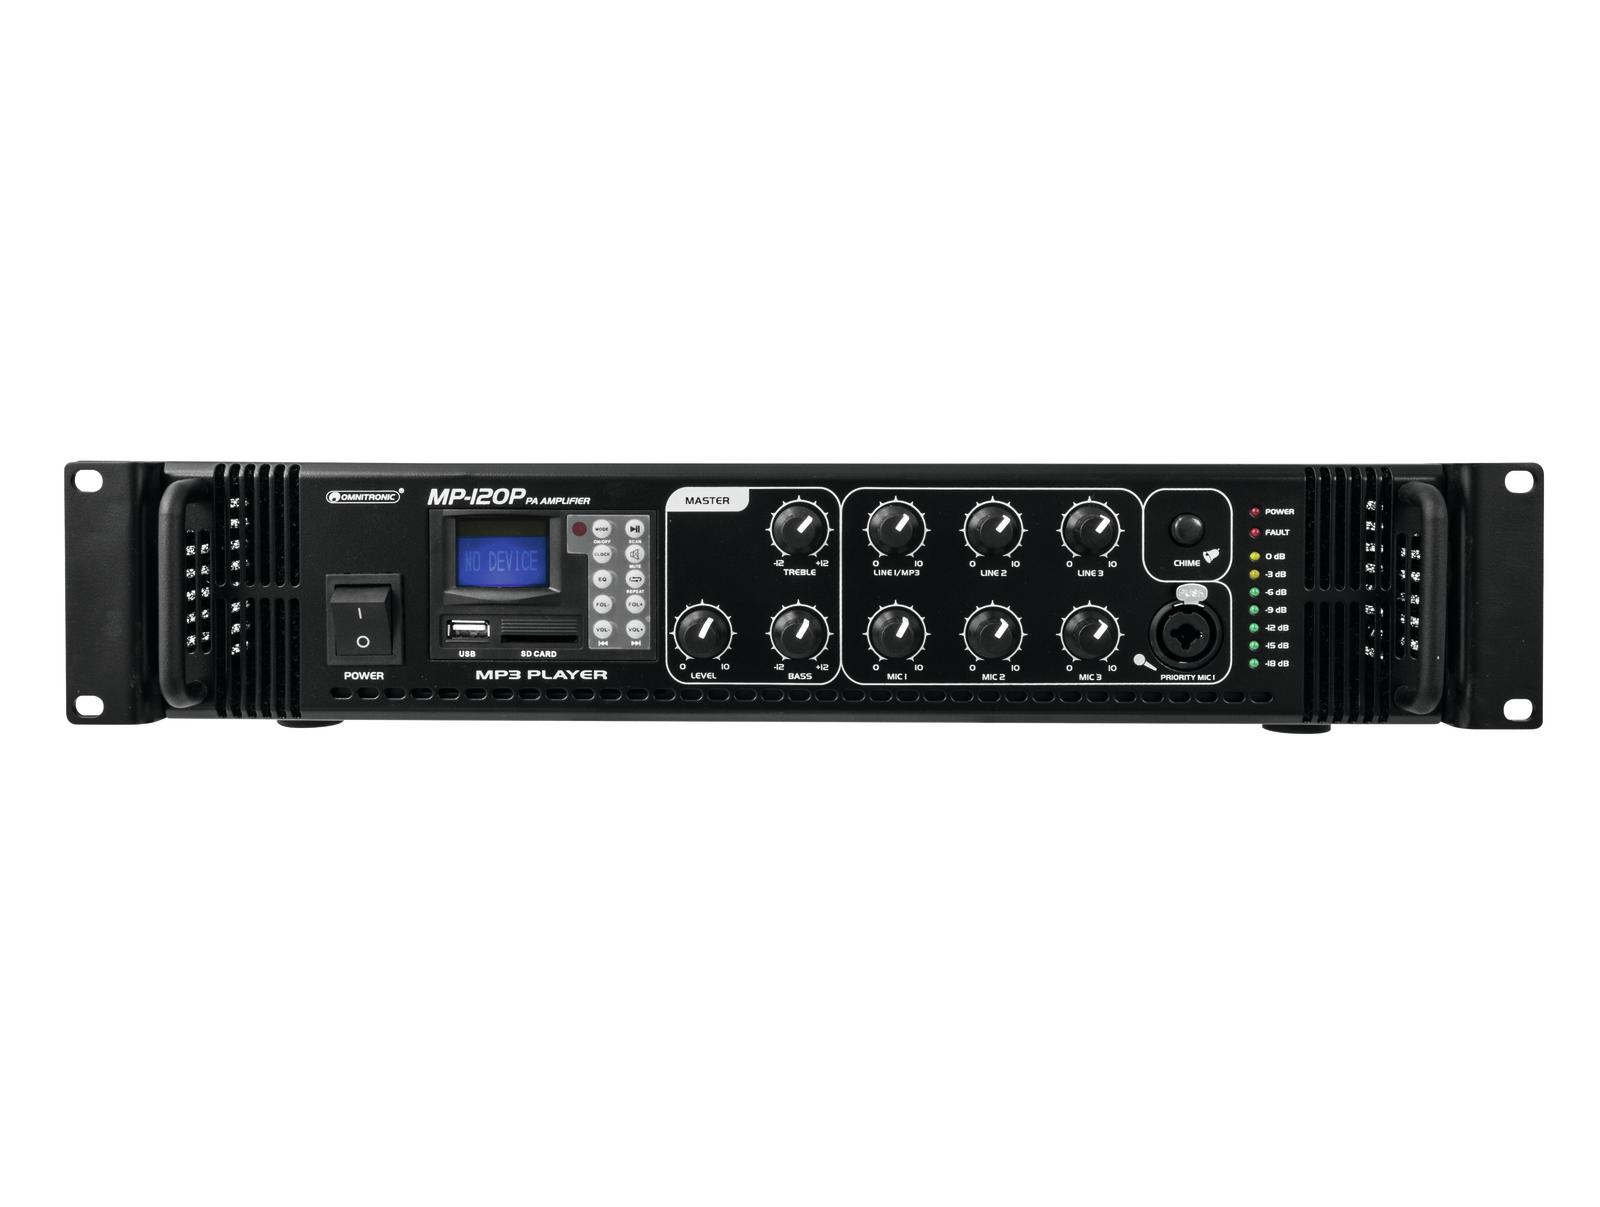 OMNITRONIC MP-120P amplificatore mixer lettore MP3 SD USB telecomando IR 240 W